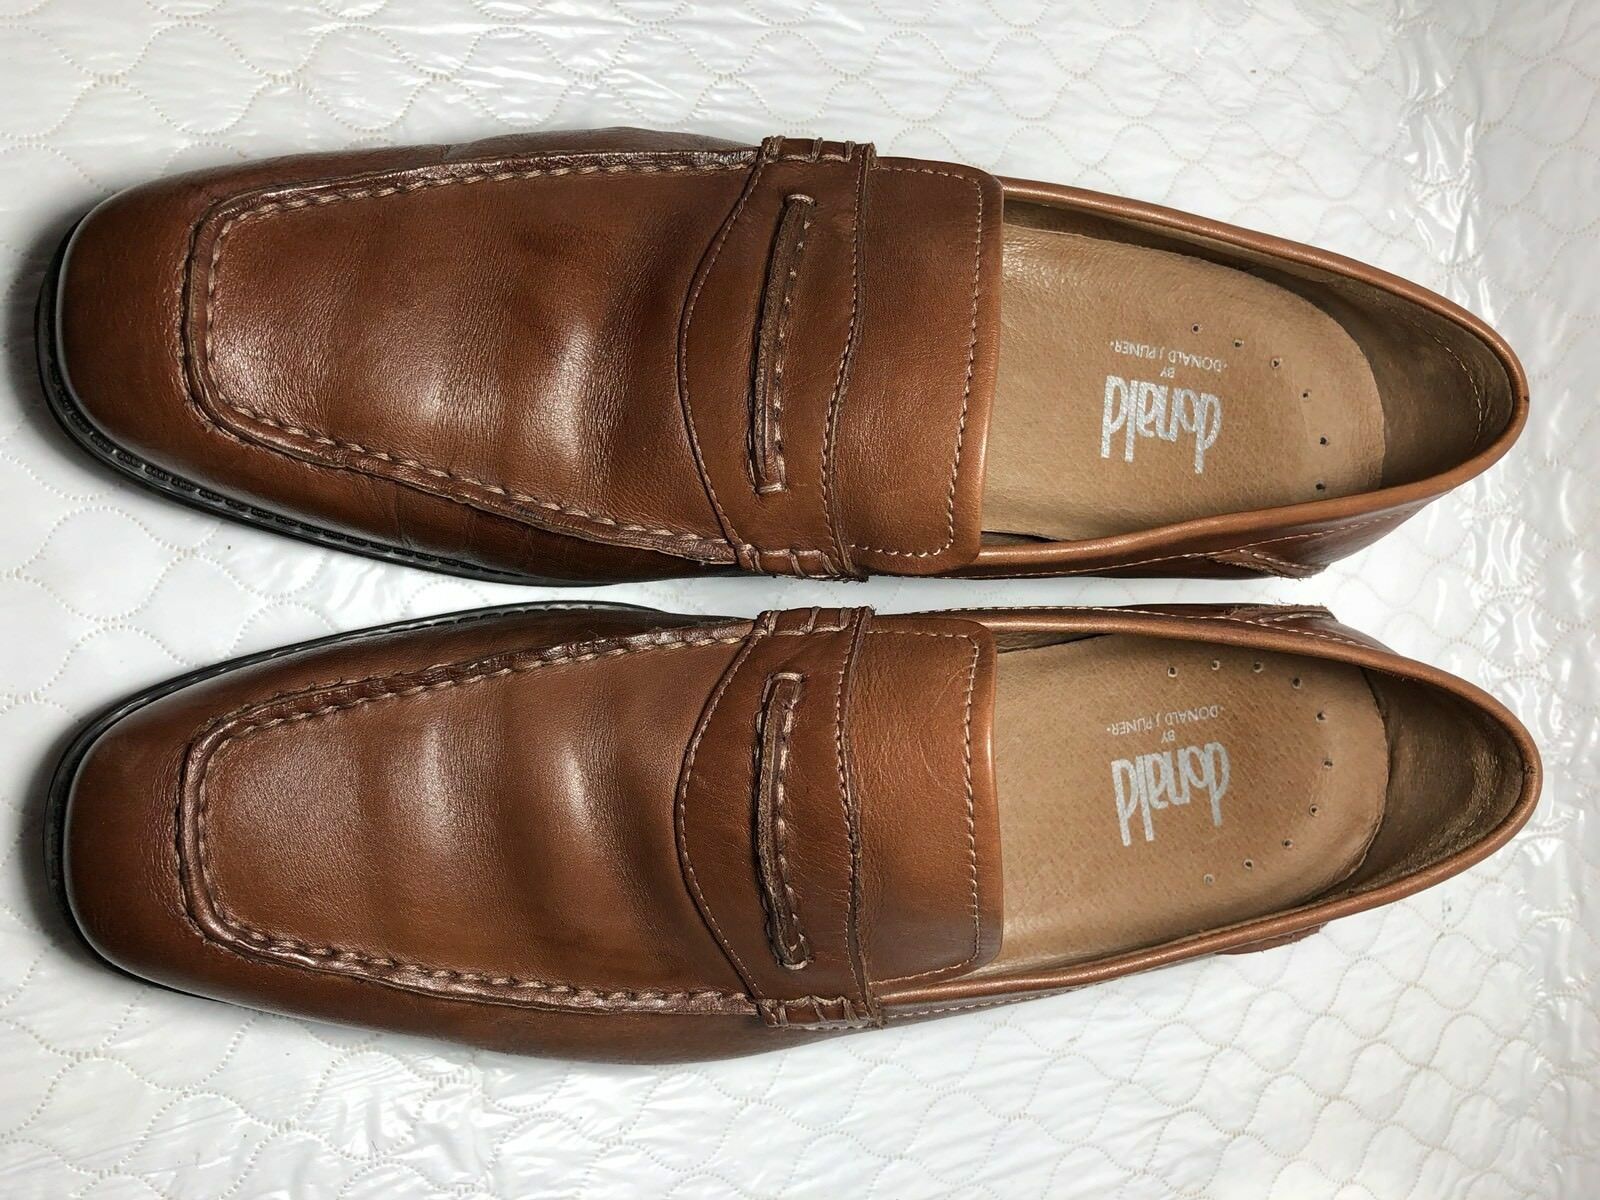 Donald Pliner Men's Oxford 6161 Penny Loafers shoes Brown Size-10.5 M